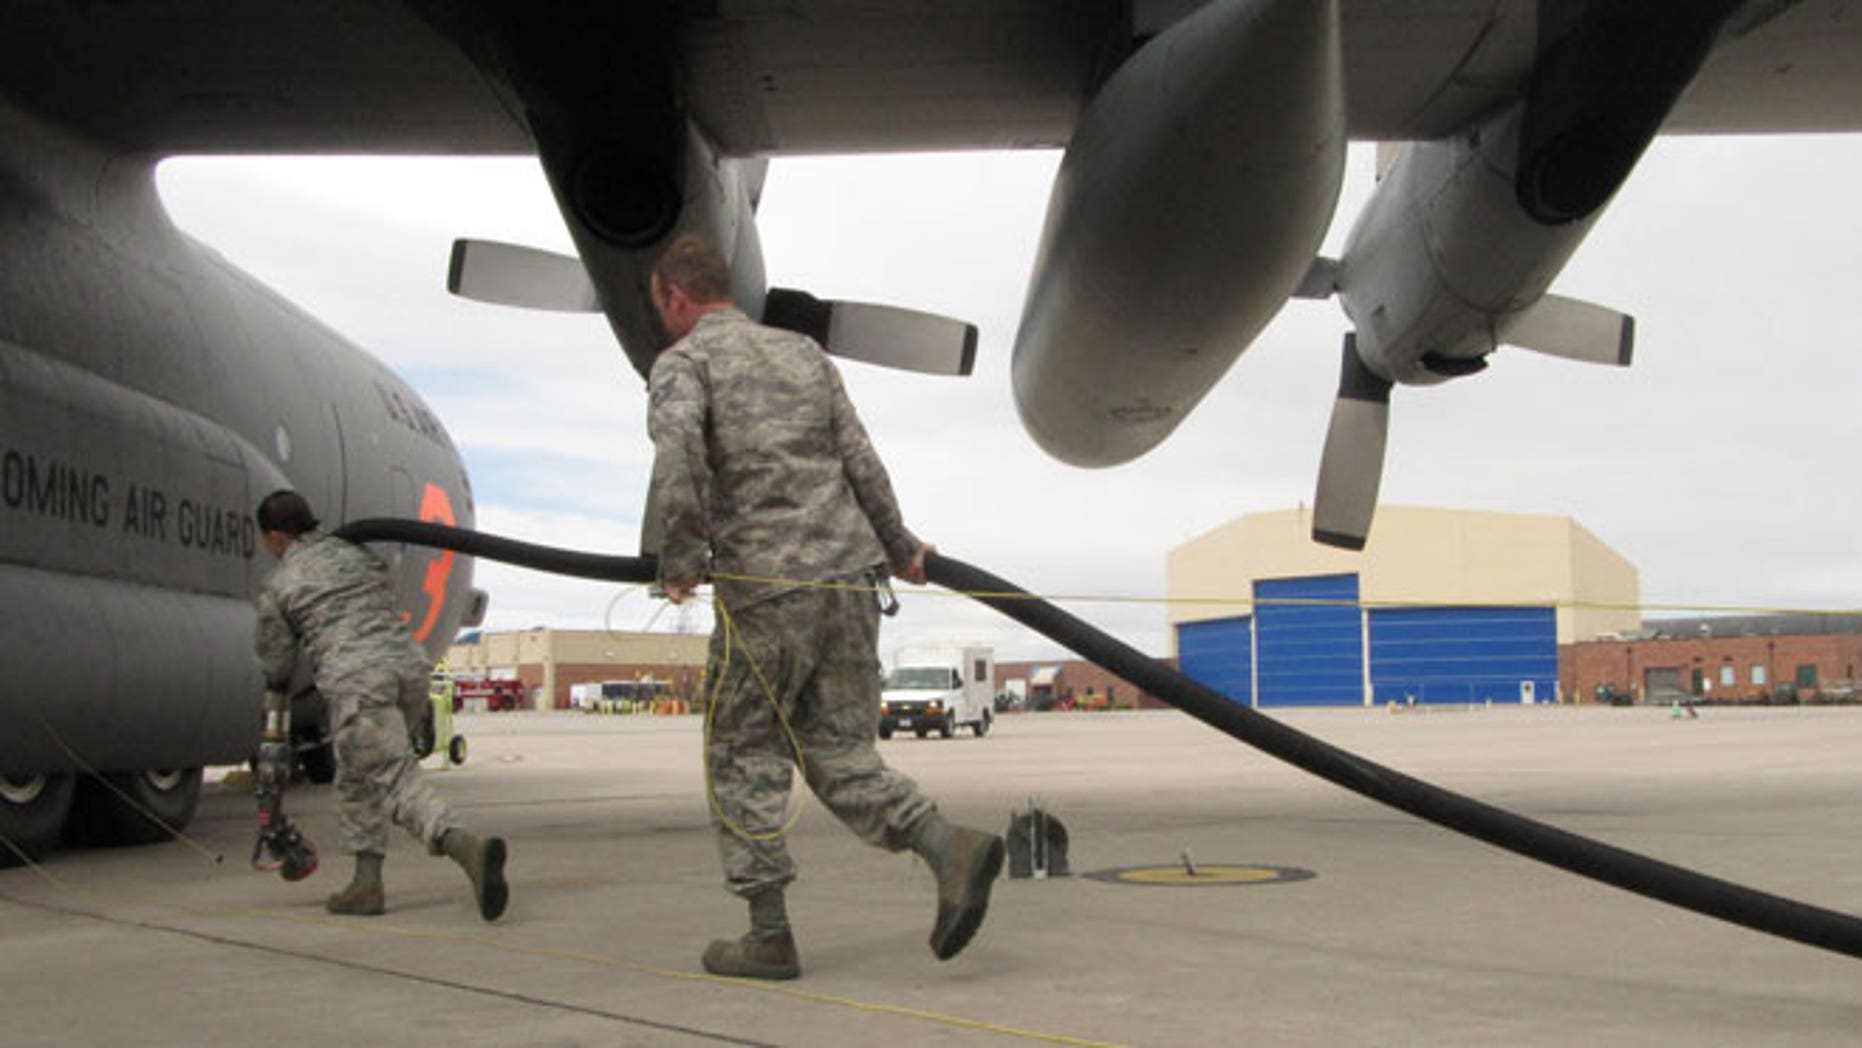 In this Wednesday April 18,2012 file photo Wyoming Air National Guard members are shown training in Cheyenne, Wyo., on using C-130 transport planes to drop fire retardant at wildfires.